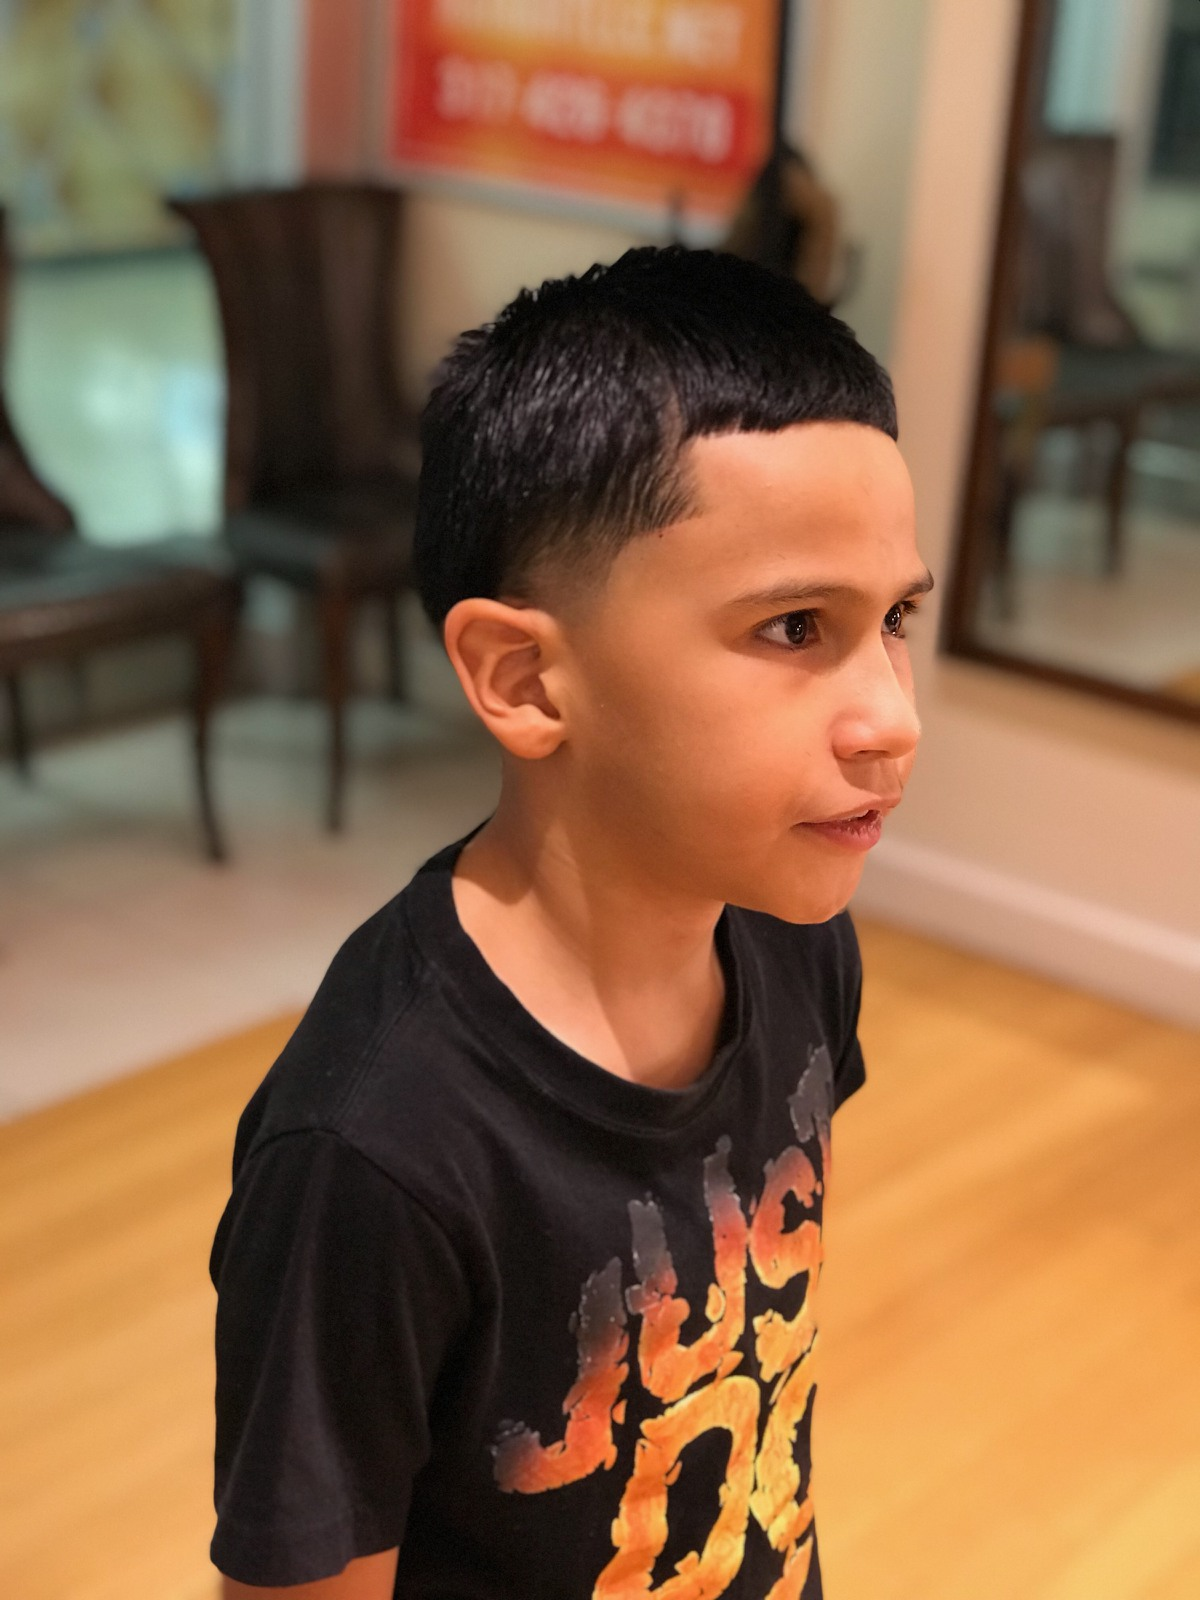 Young Boy's Haircut